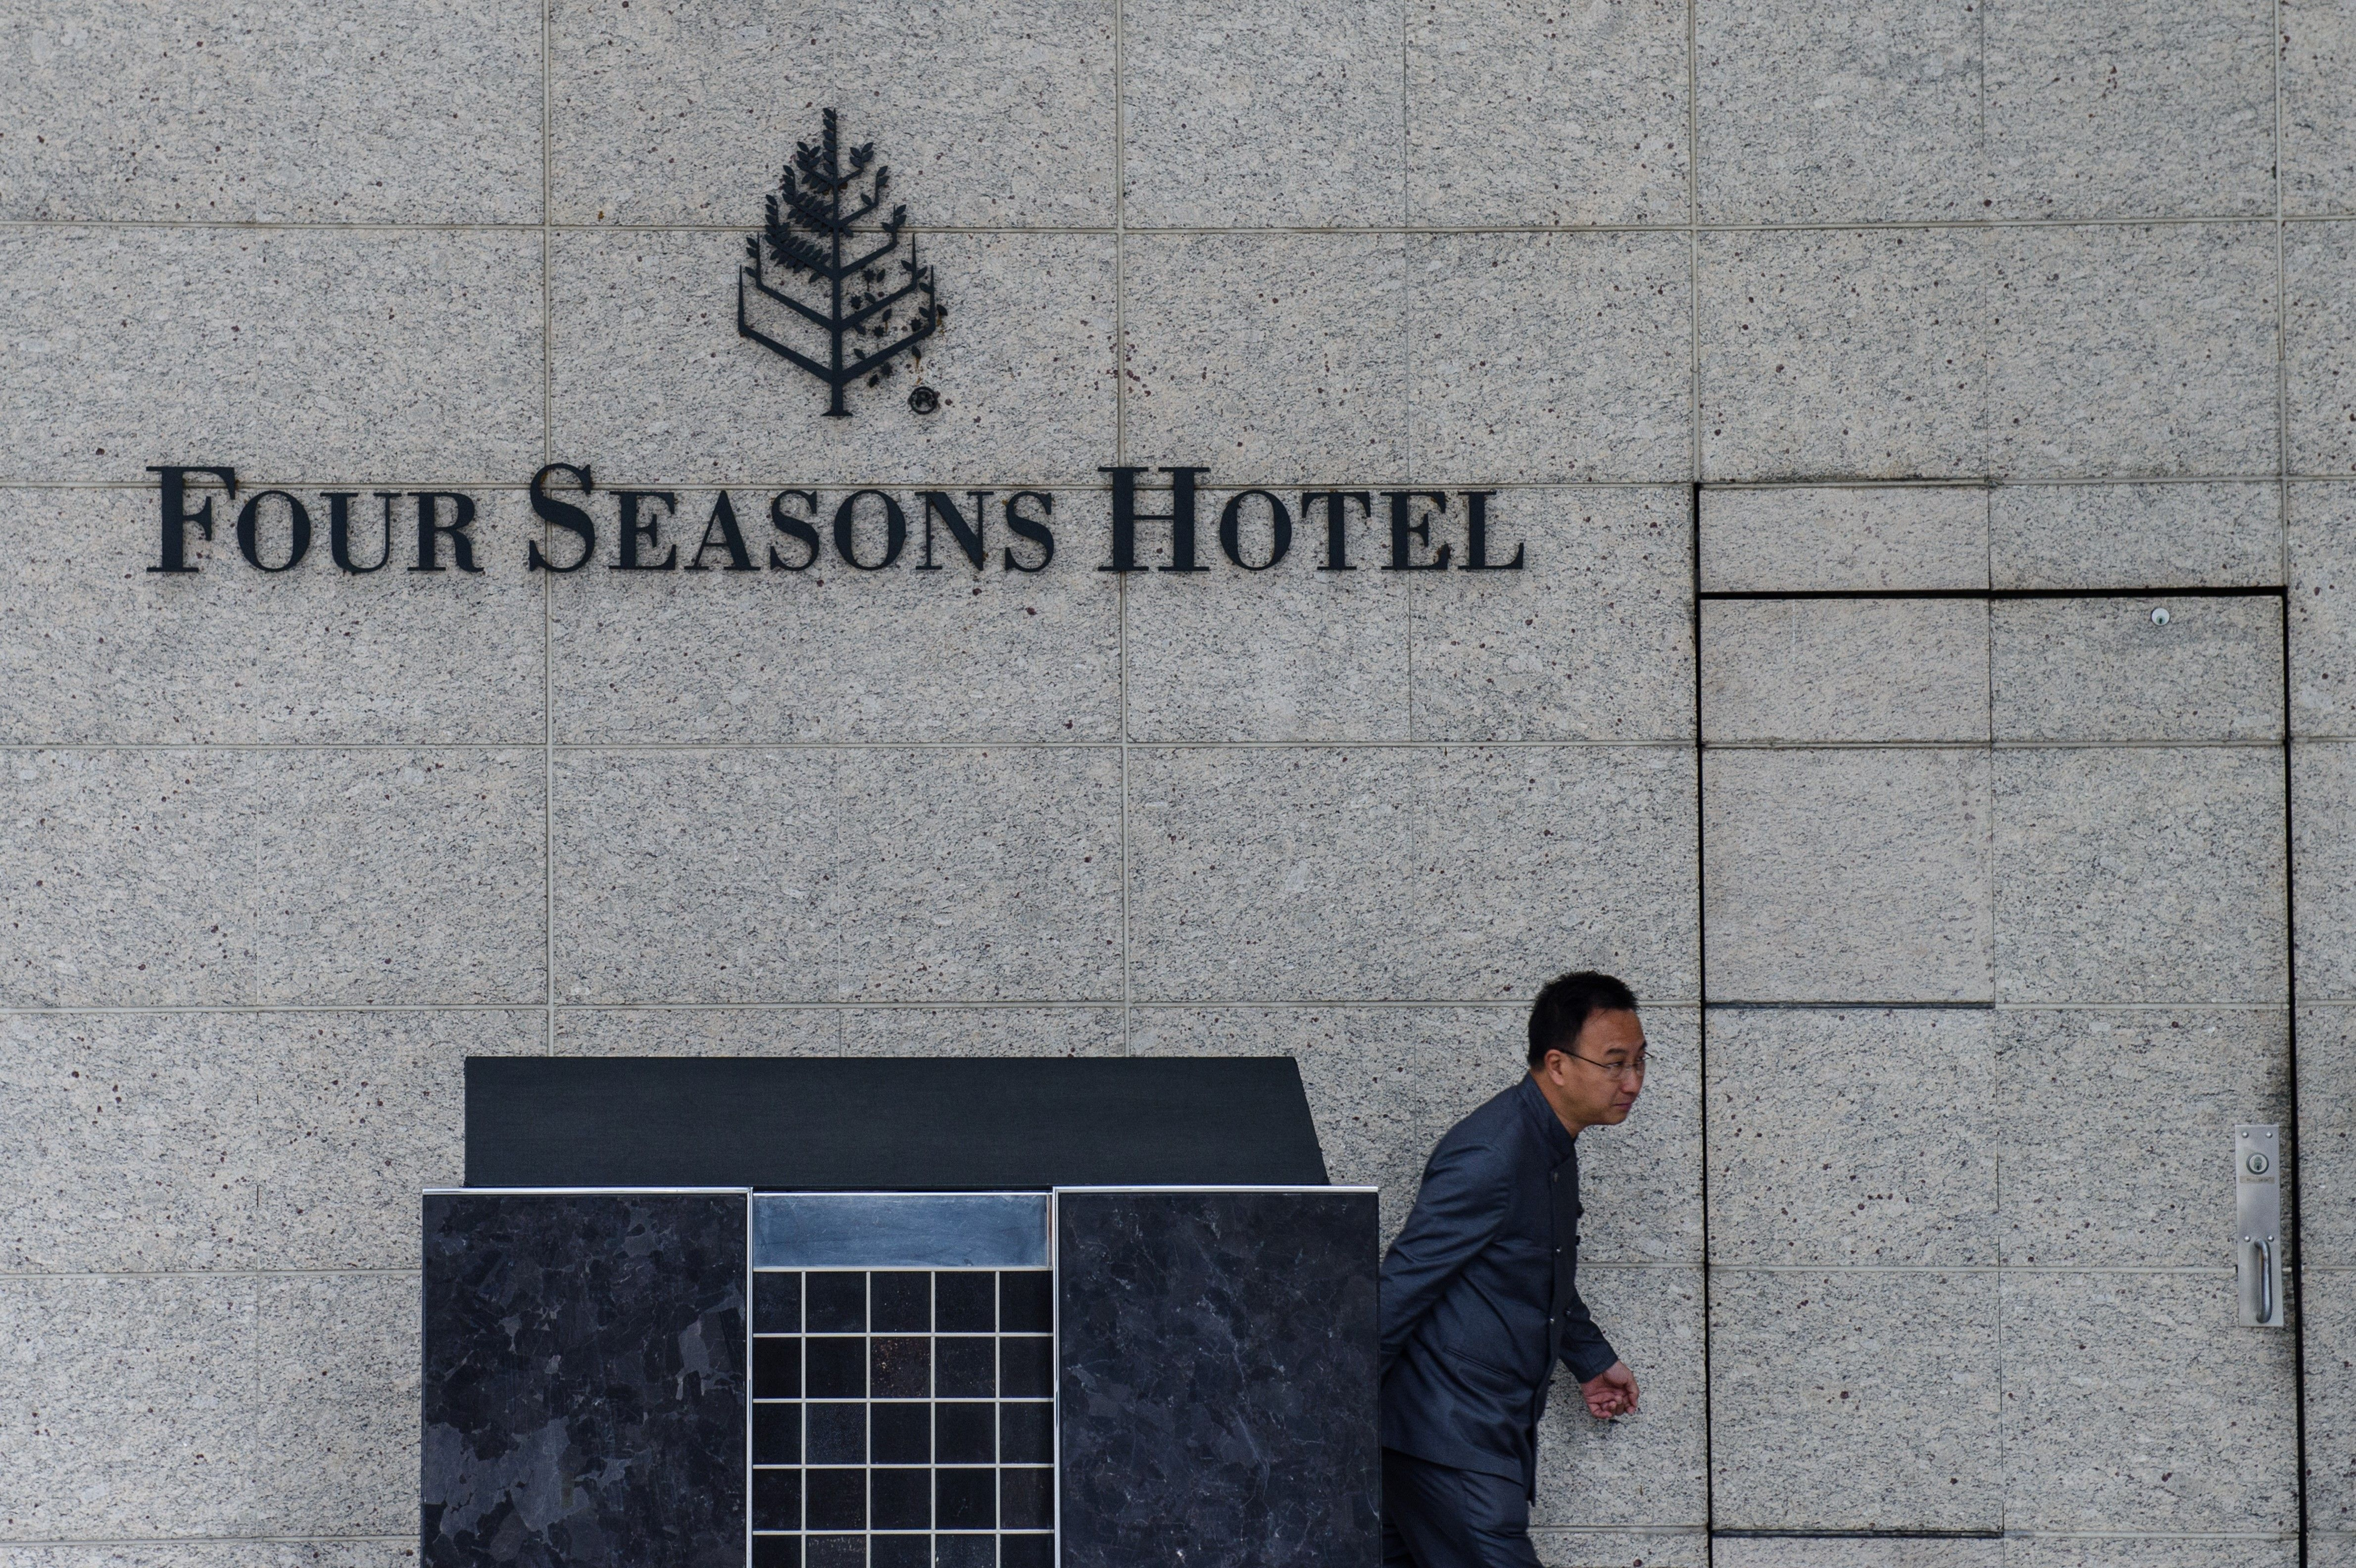 A member of staff walks outside the Four Seasons Hotel in Hong Kong on Feb. 1, 2017.